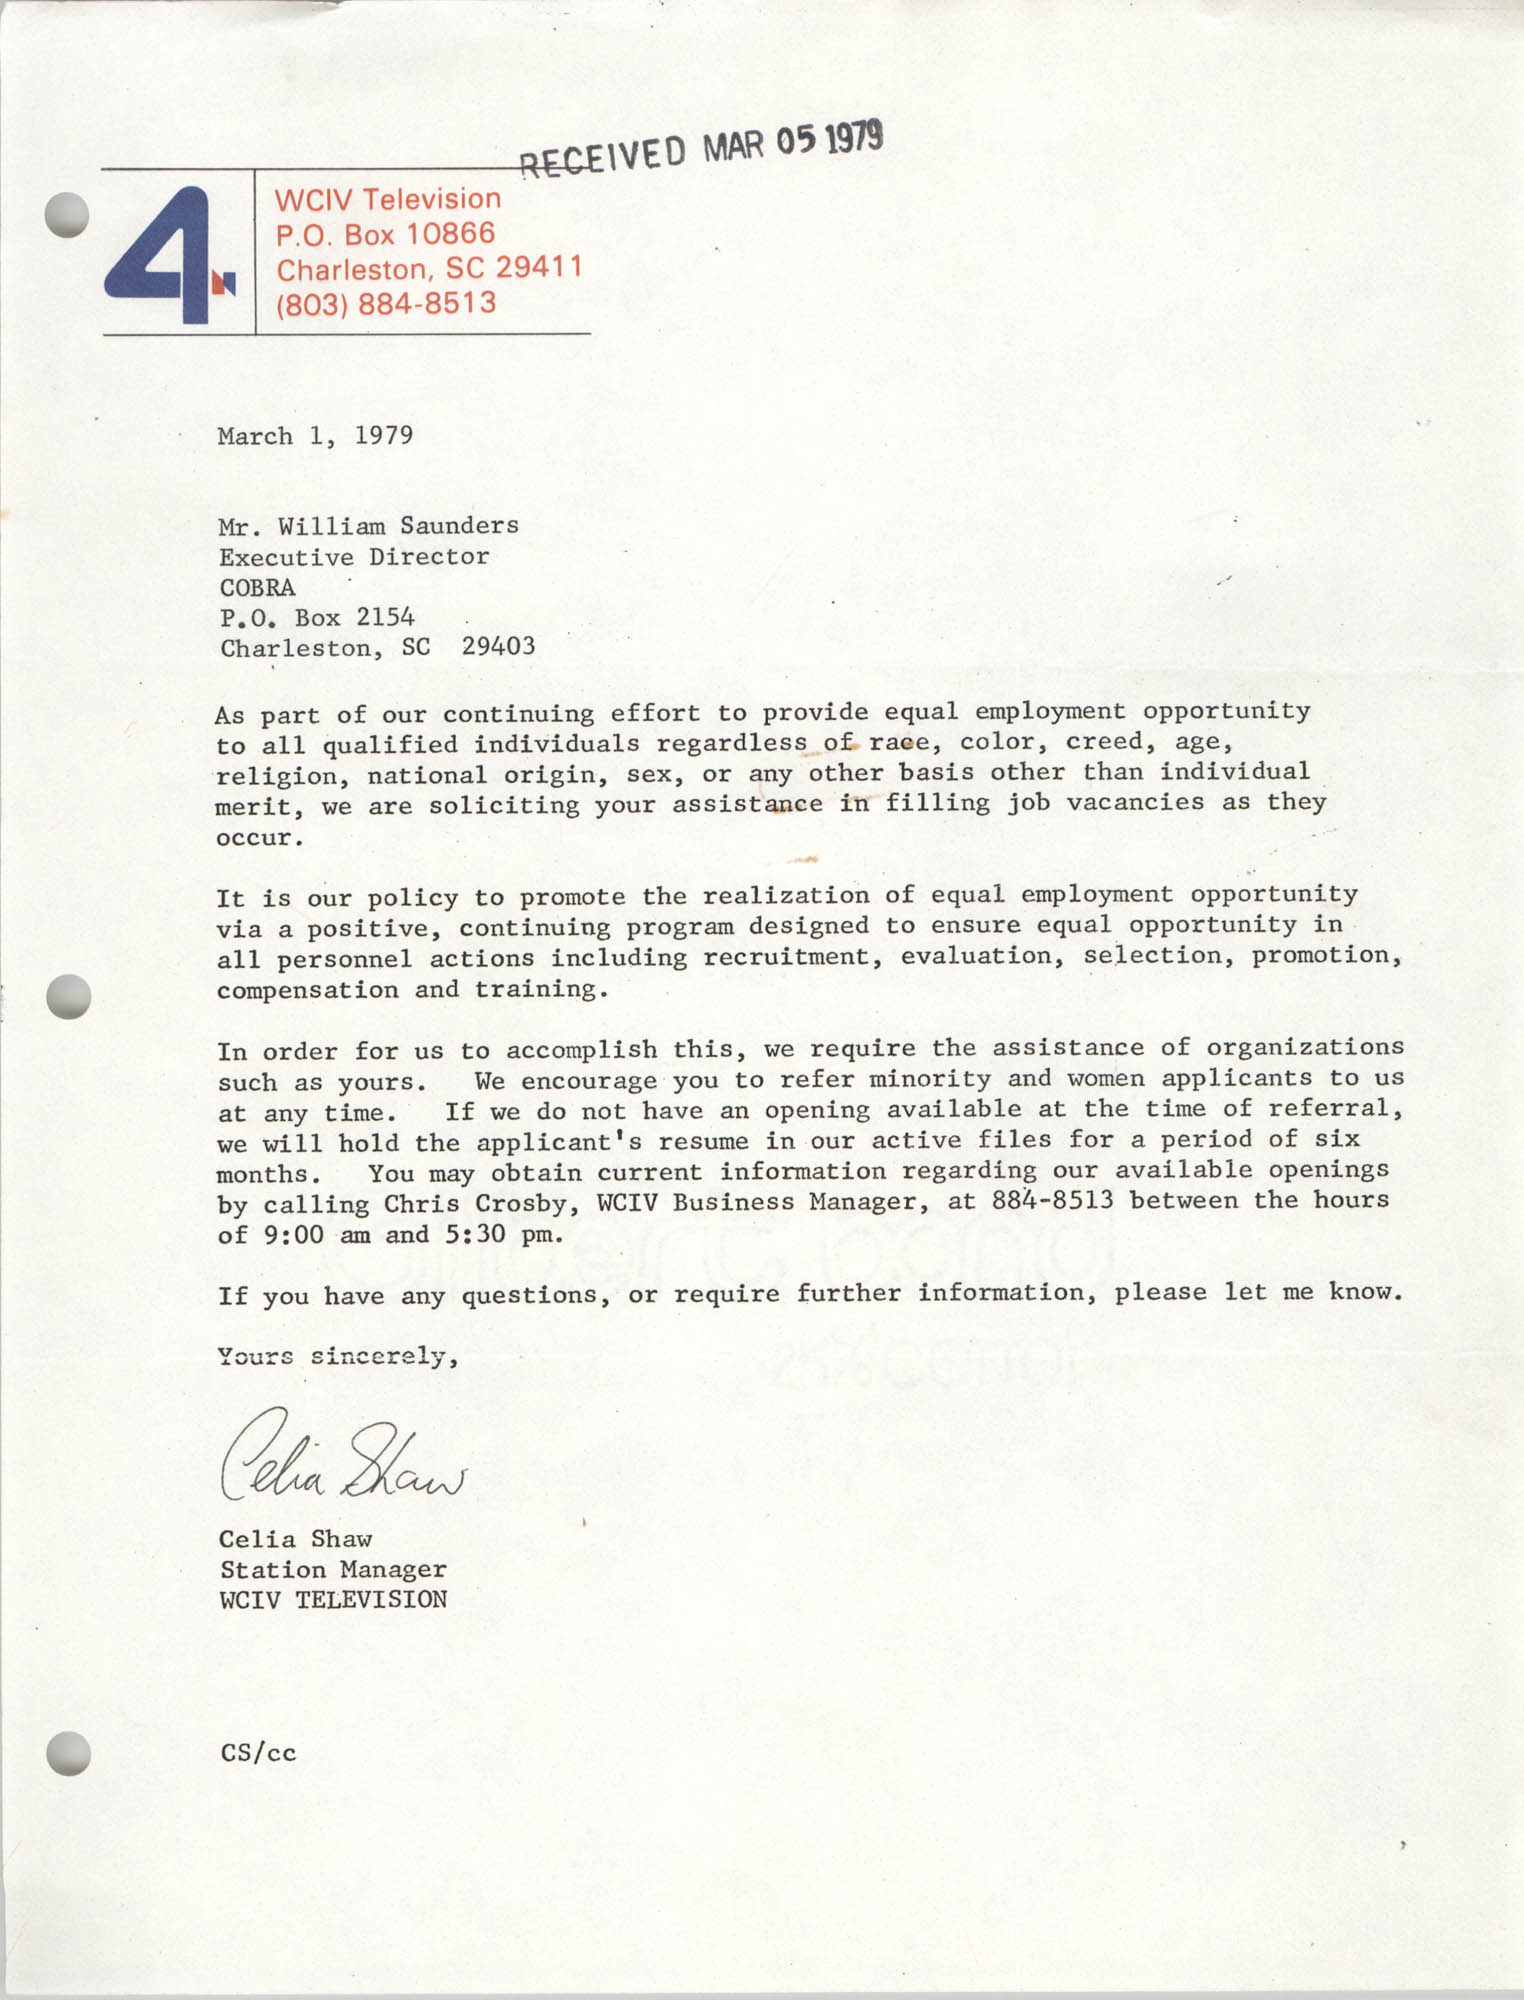 Letter from Celia Shaw to William Saunders, March 1, 1979